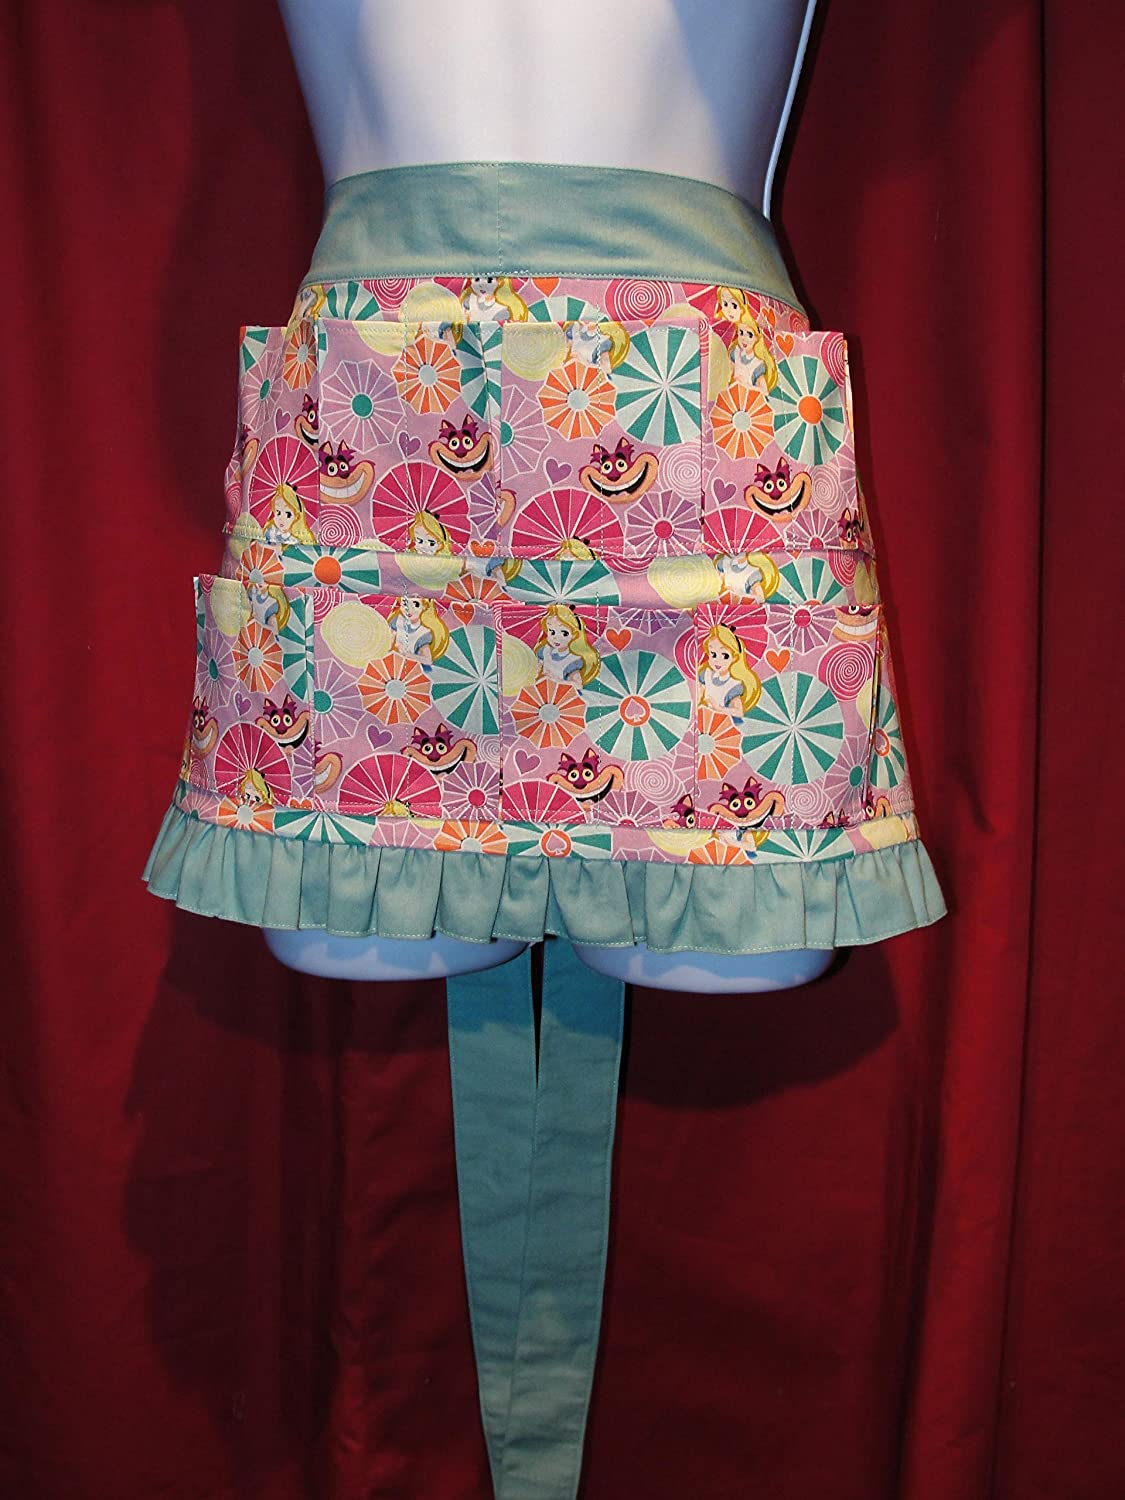 Pockets hold eggs Handmade Egg Gathering /& Collecting Alice in Wonderland Cheshire Cat 10 pocket Apron with ruffle Made in the USA!